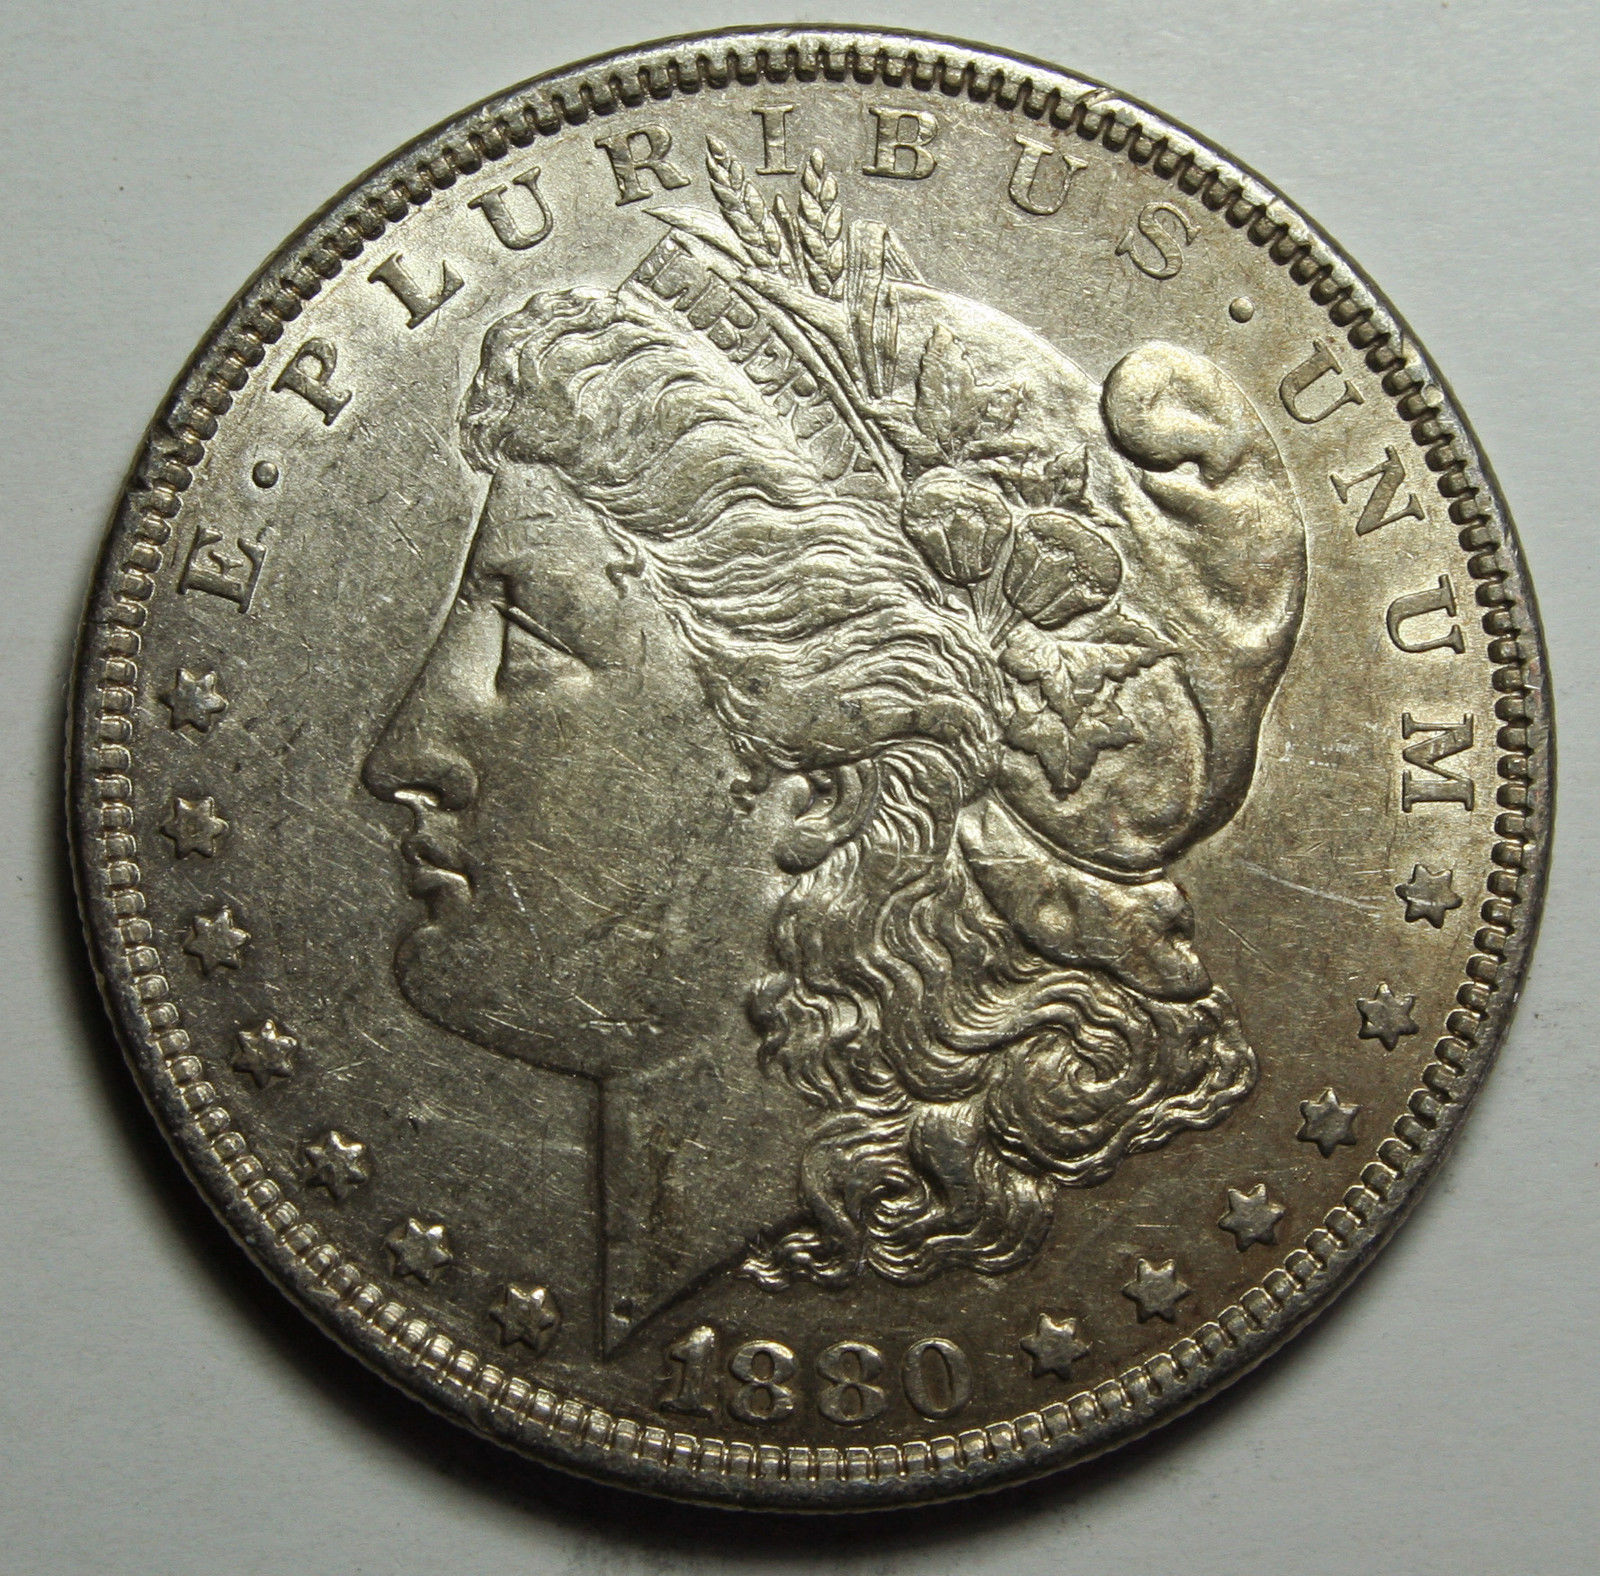 1880 MORGAN SILVER DOLLAR COIN Lot# D 7